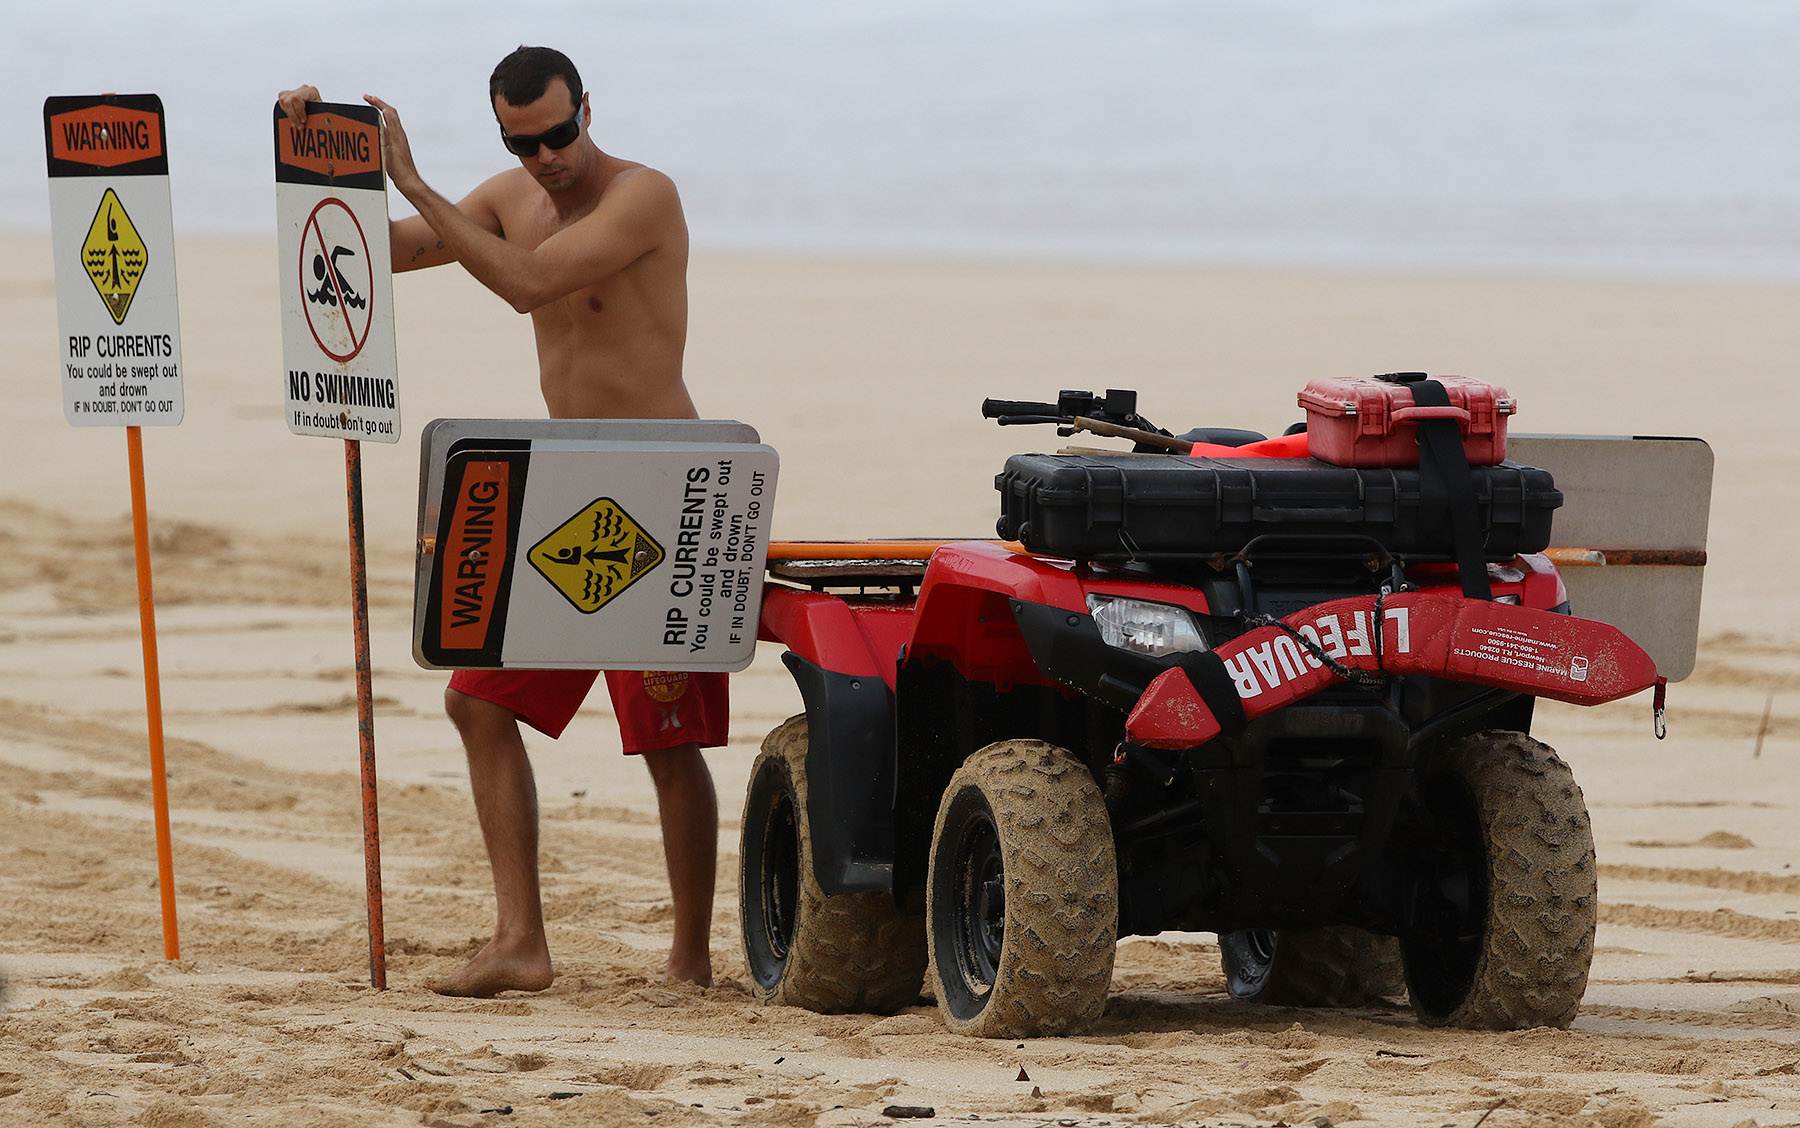 <p>A lifeguard places signs warning of rip currents and unsafe swimming at the Banzai Pipeline on Oahu&#8217;s north shore.</p>